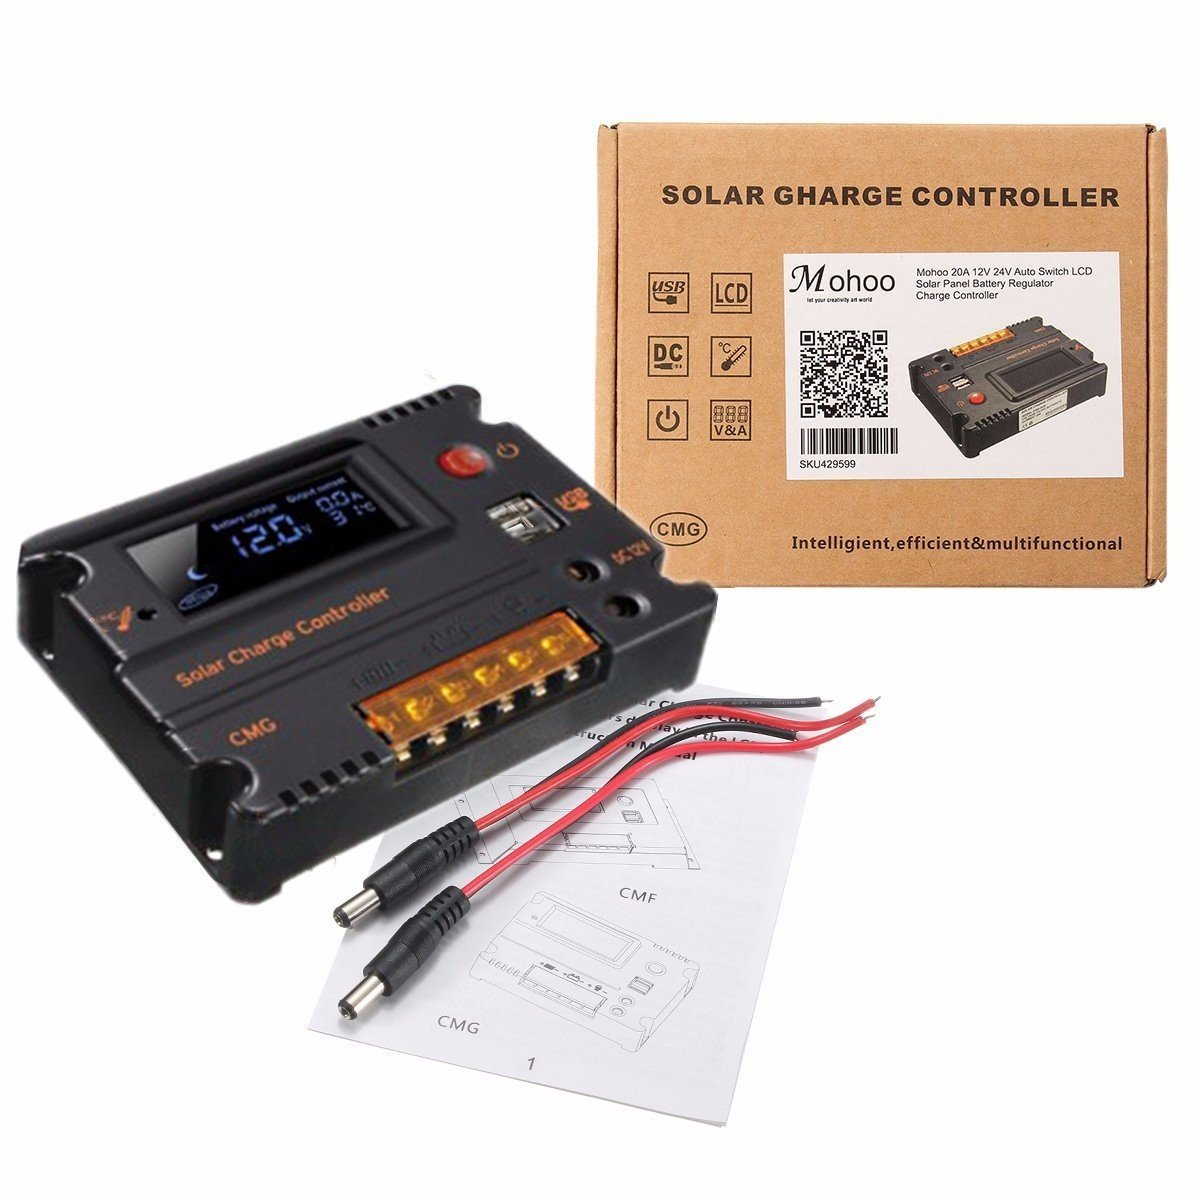 Mohoo 20a 12v 24v Solar Charge Controller Auto Switch Lcd Charger Circuit